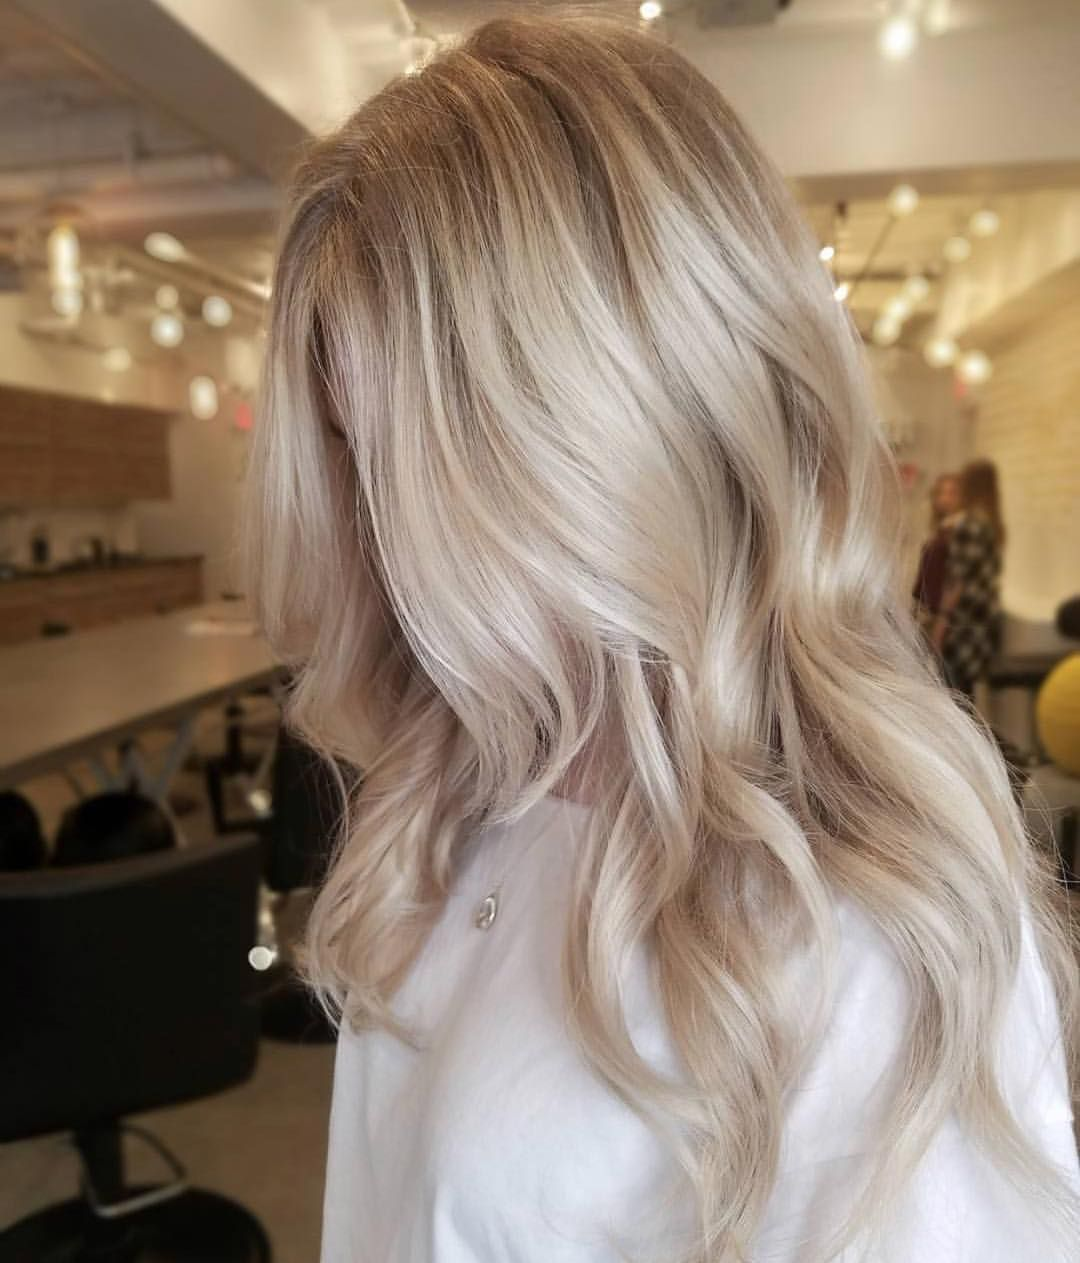 """Short/Textured Hair Expert on Instagram: """"What happens when you pair a perfect Balayage and a textured lob ? This beauty ❤️❤️❤️❤️#btconeshot_boblob18 #behindthechair…"""""""